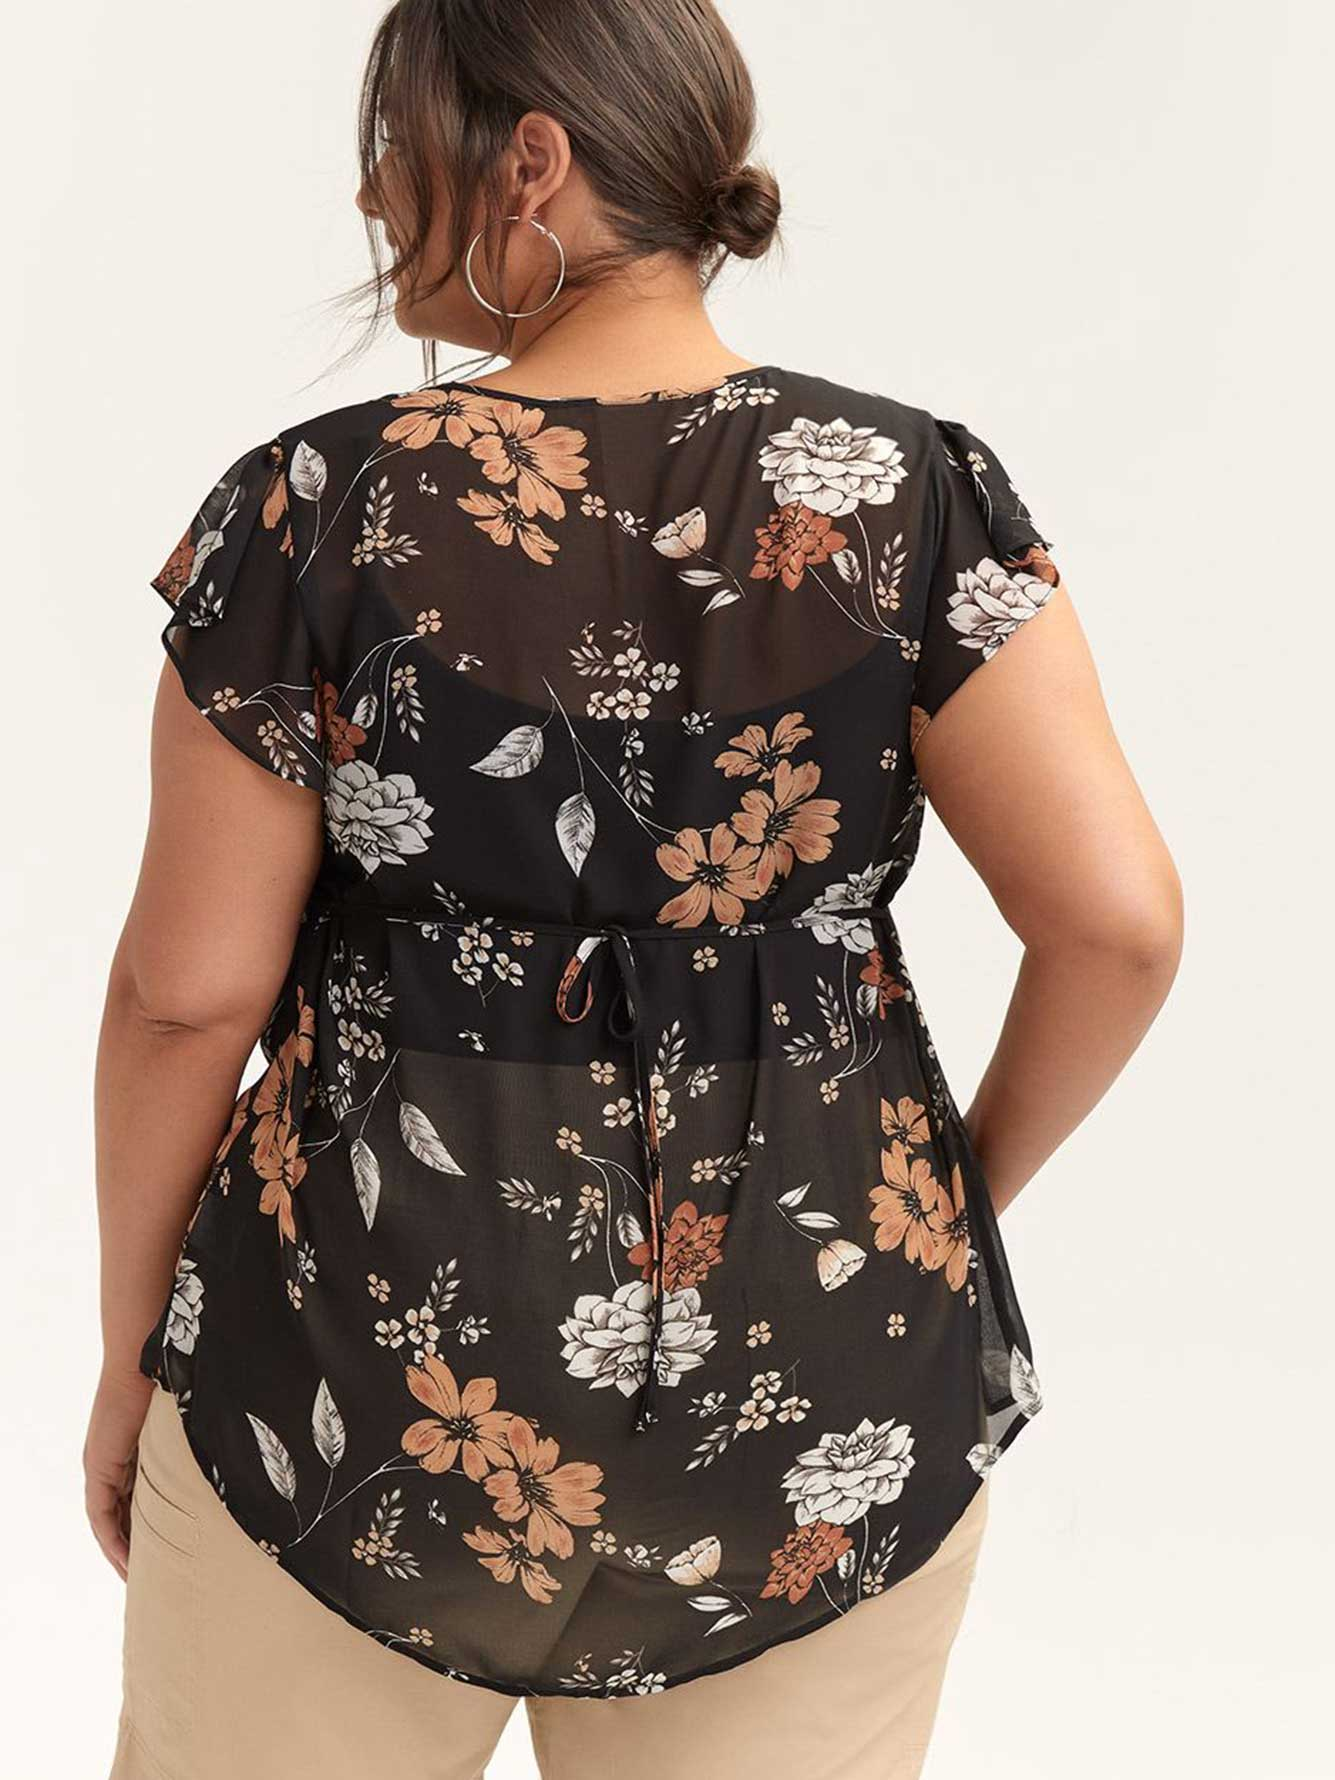 Printed Flutter Sleeve Blouse with Ruffles - In Every Story